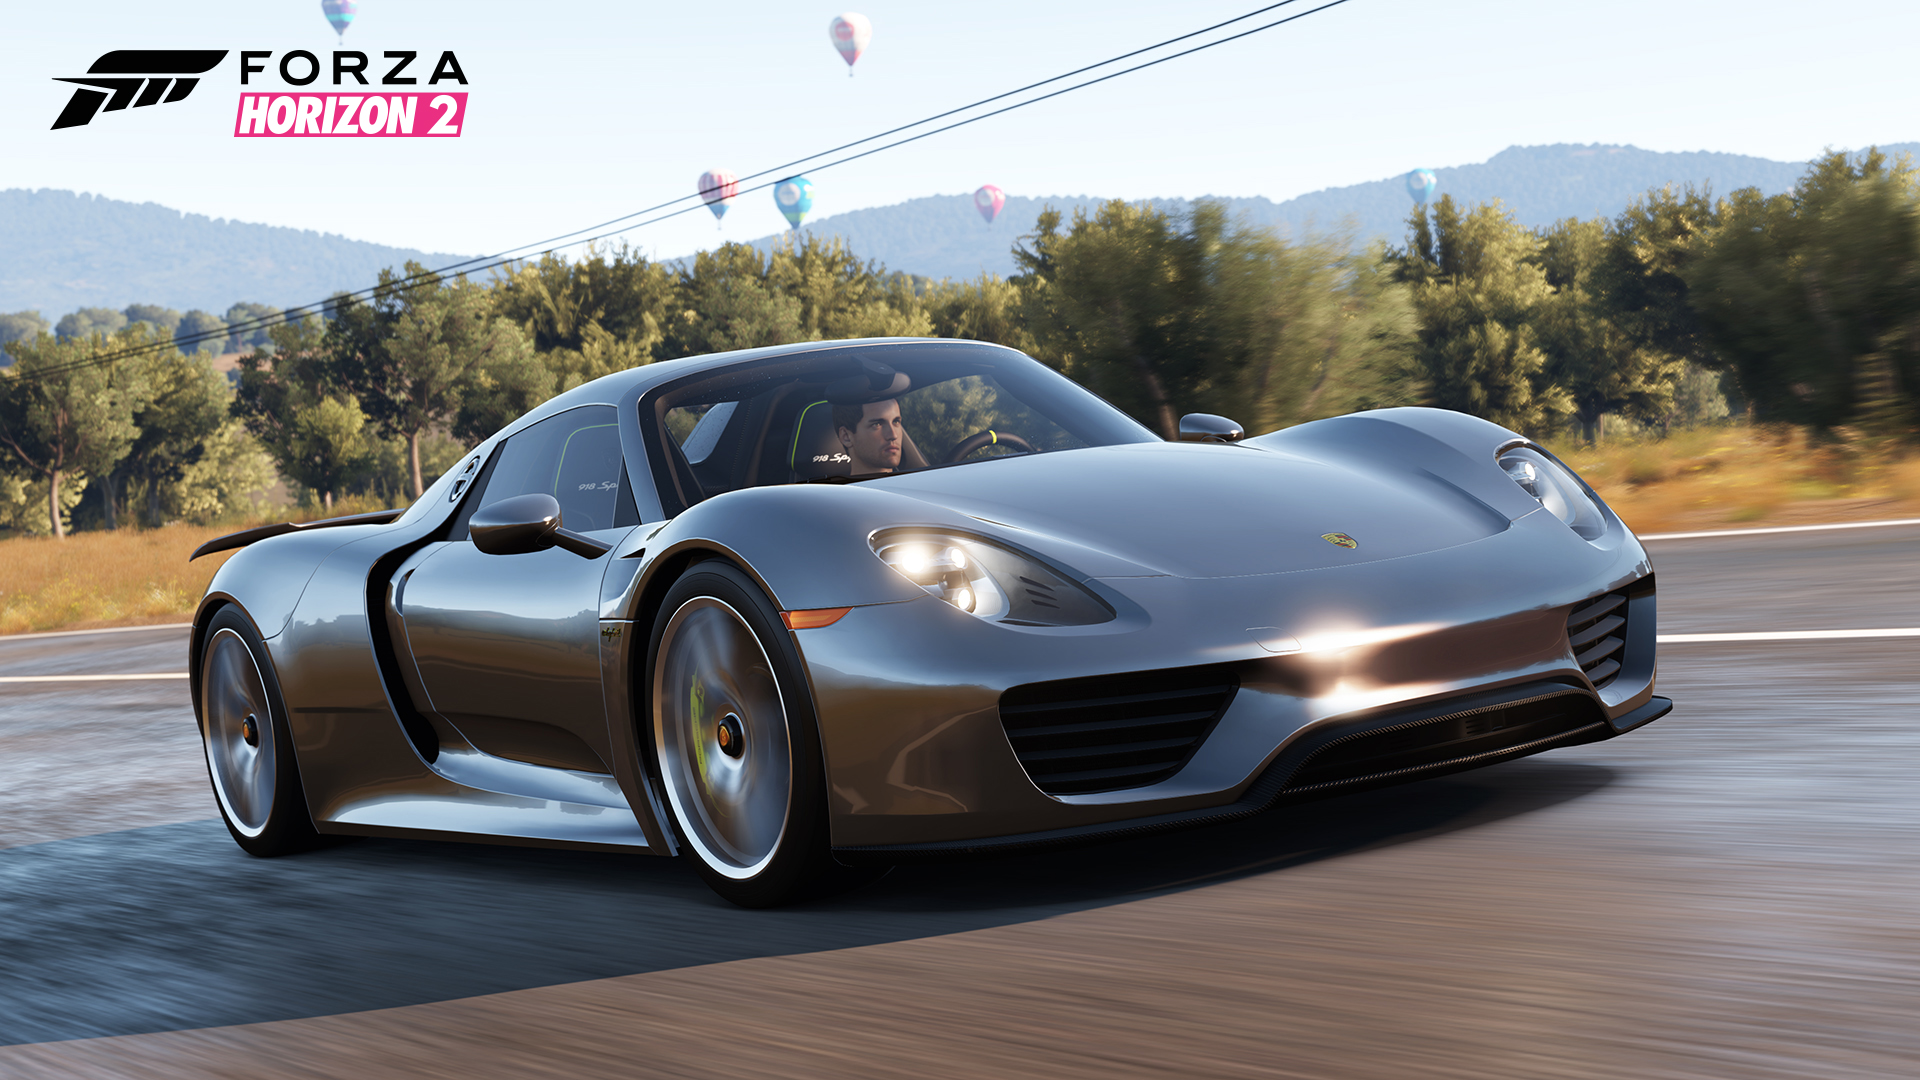 porsche-s-latest-car-pack-for-forza-horizon-2-reminds-us-of-nfs-porsche-96470_1 Outstanding Porsche 918 Spyder Nfs Rivals Cars Trend